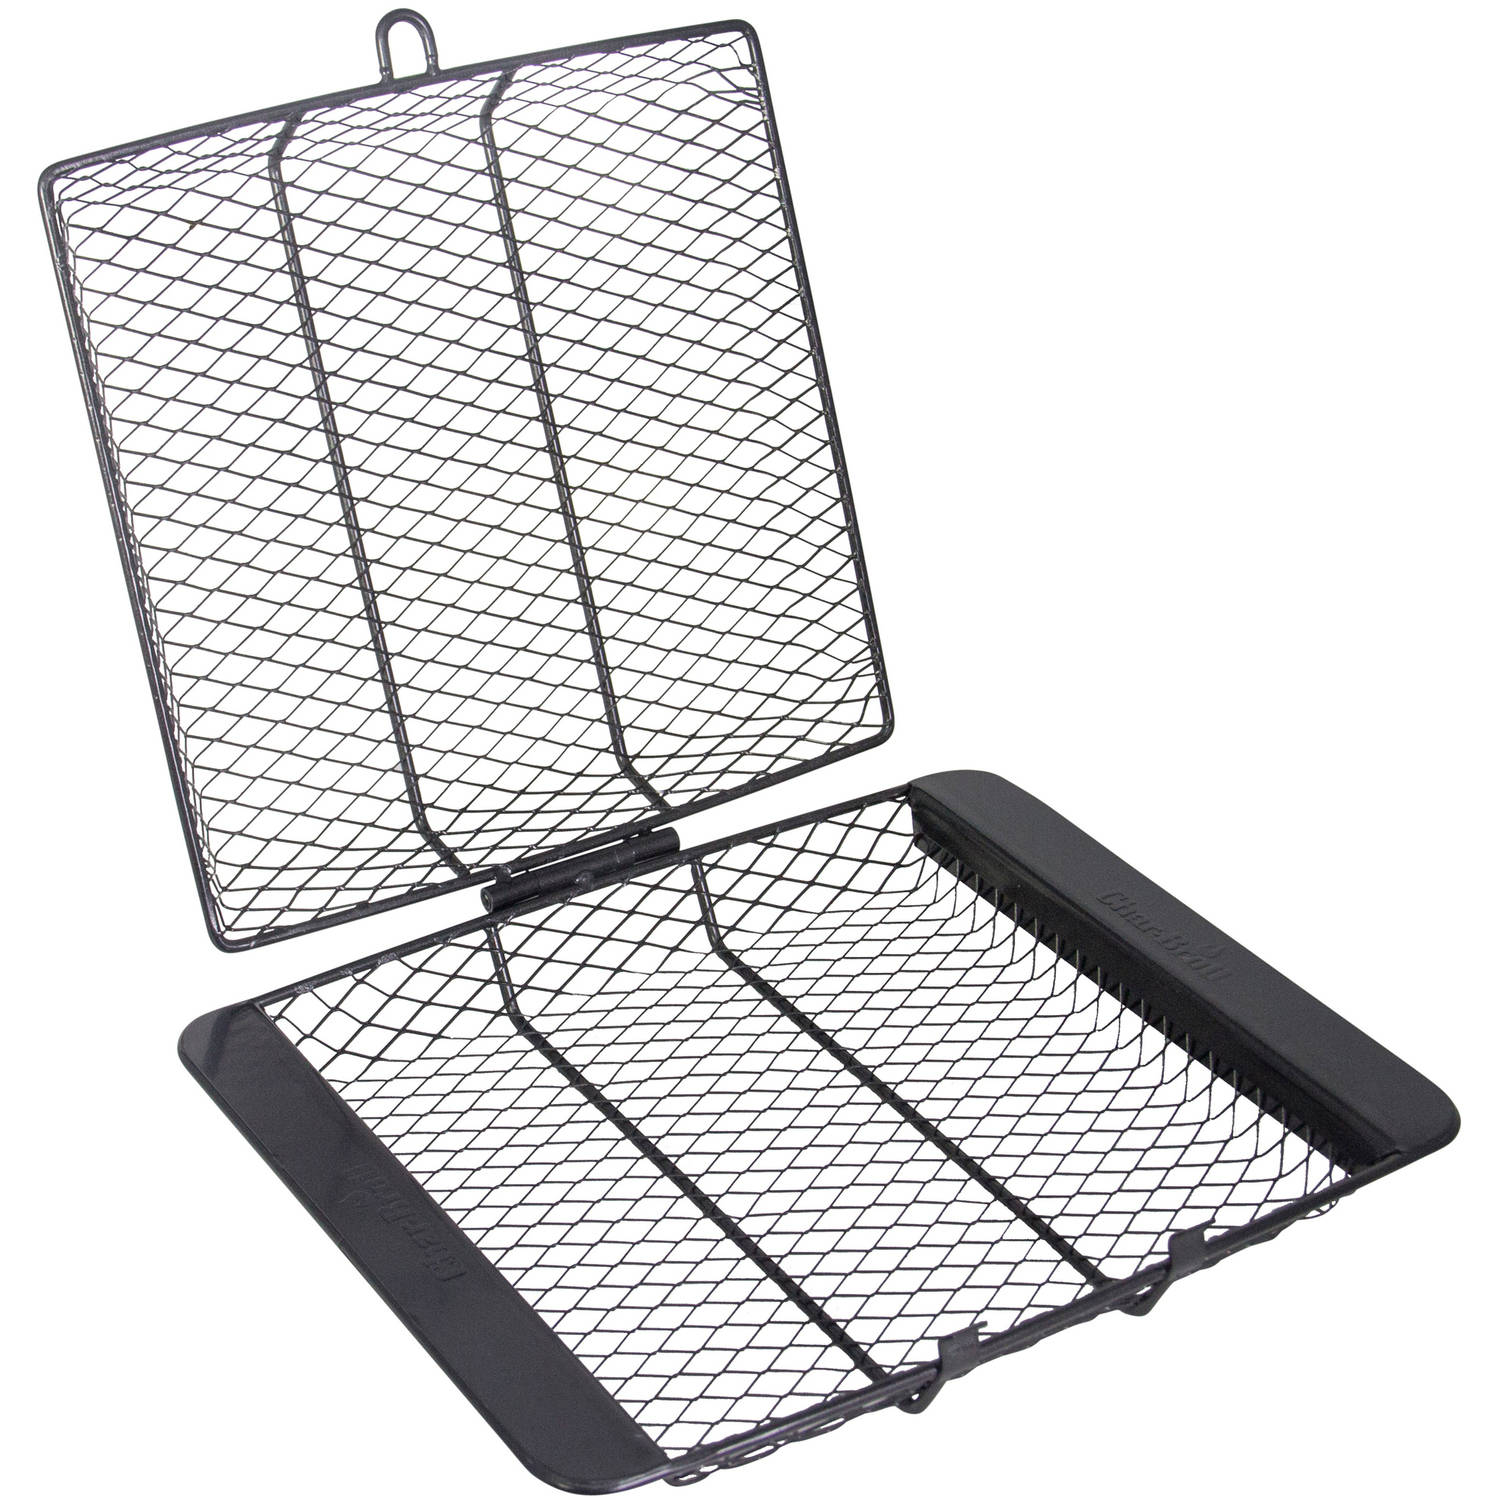 Char Broil Non-Stick Grill Basket